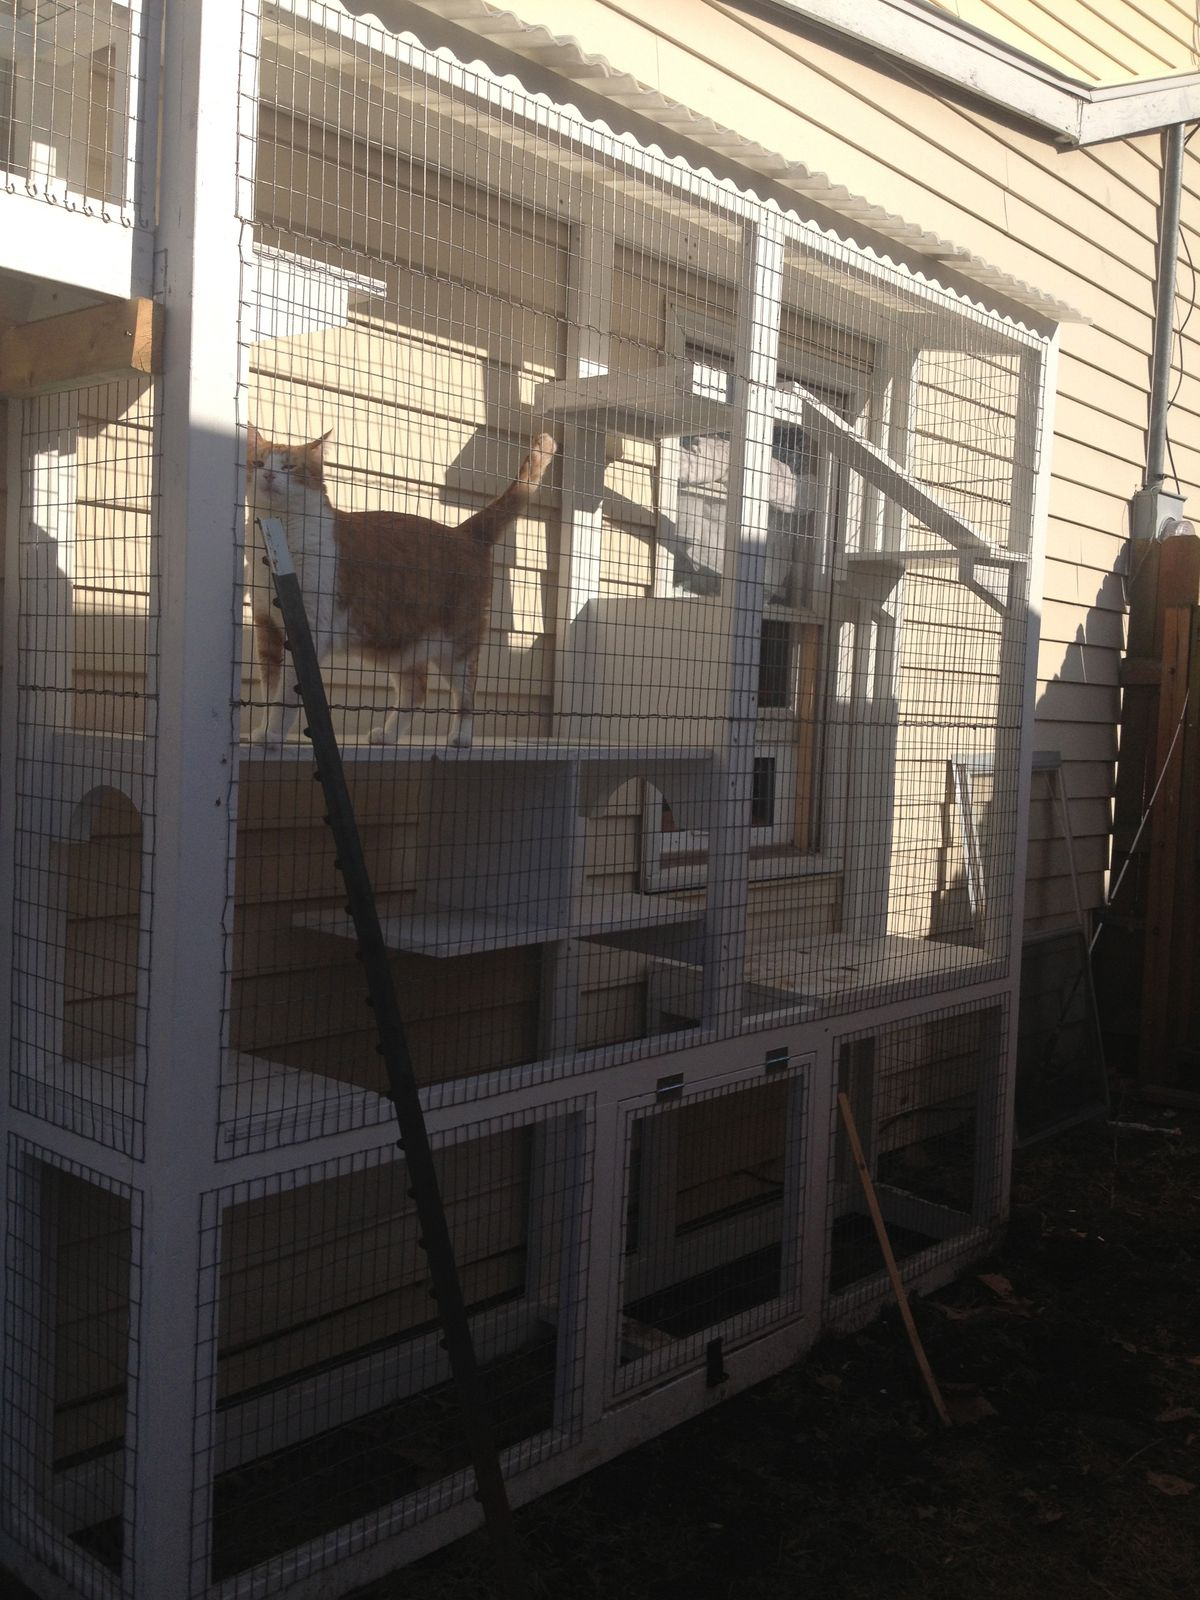 1000 ideas about Outdoor Cat Houses on Pinterest